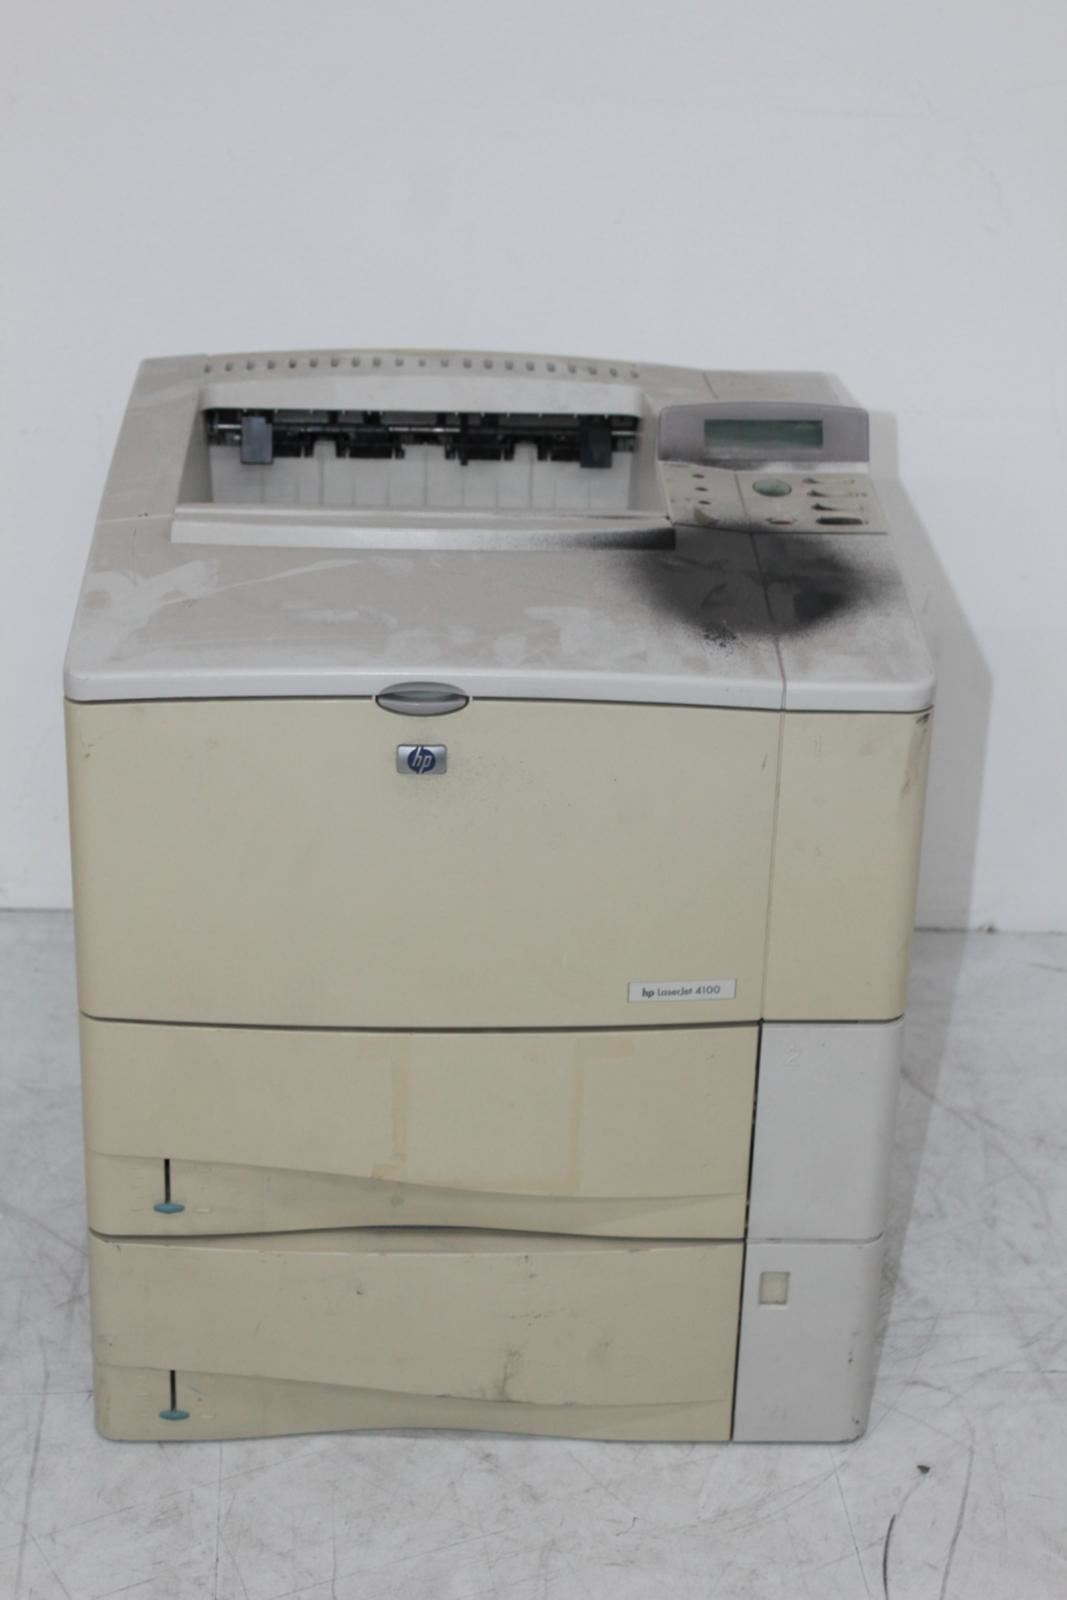 FAULTY-HP-LaserJet-4100-Series-Workgroup-Grey-Printer-For-Spares-Repairs